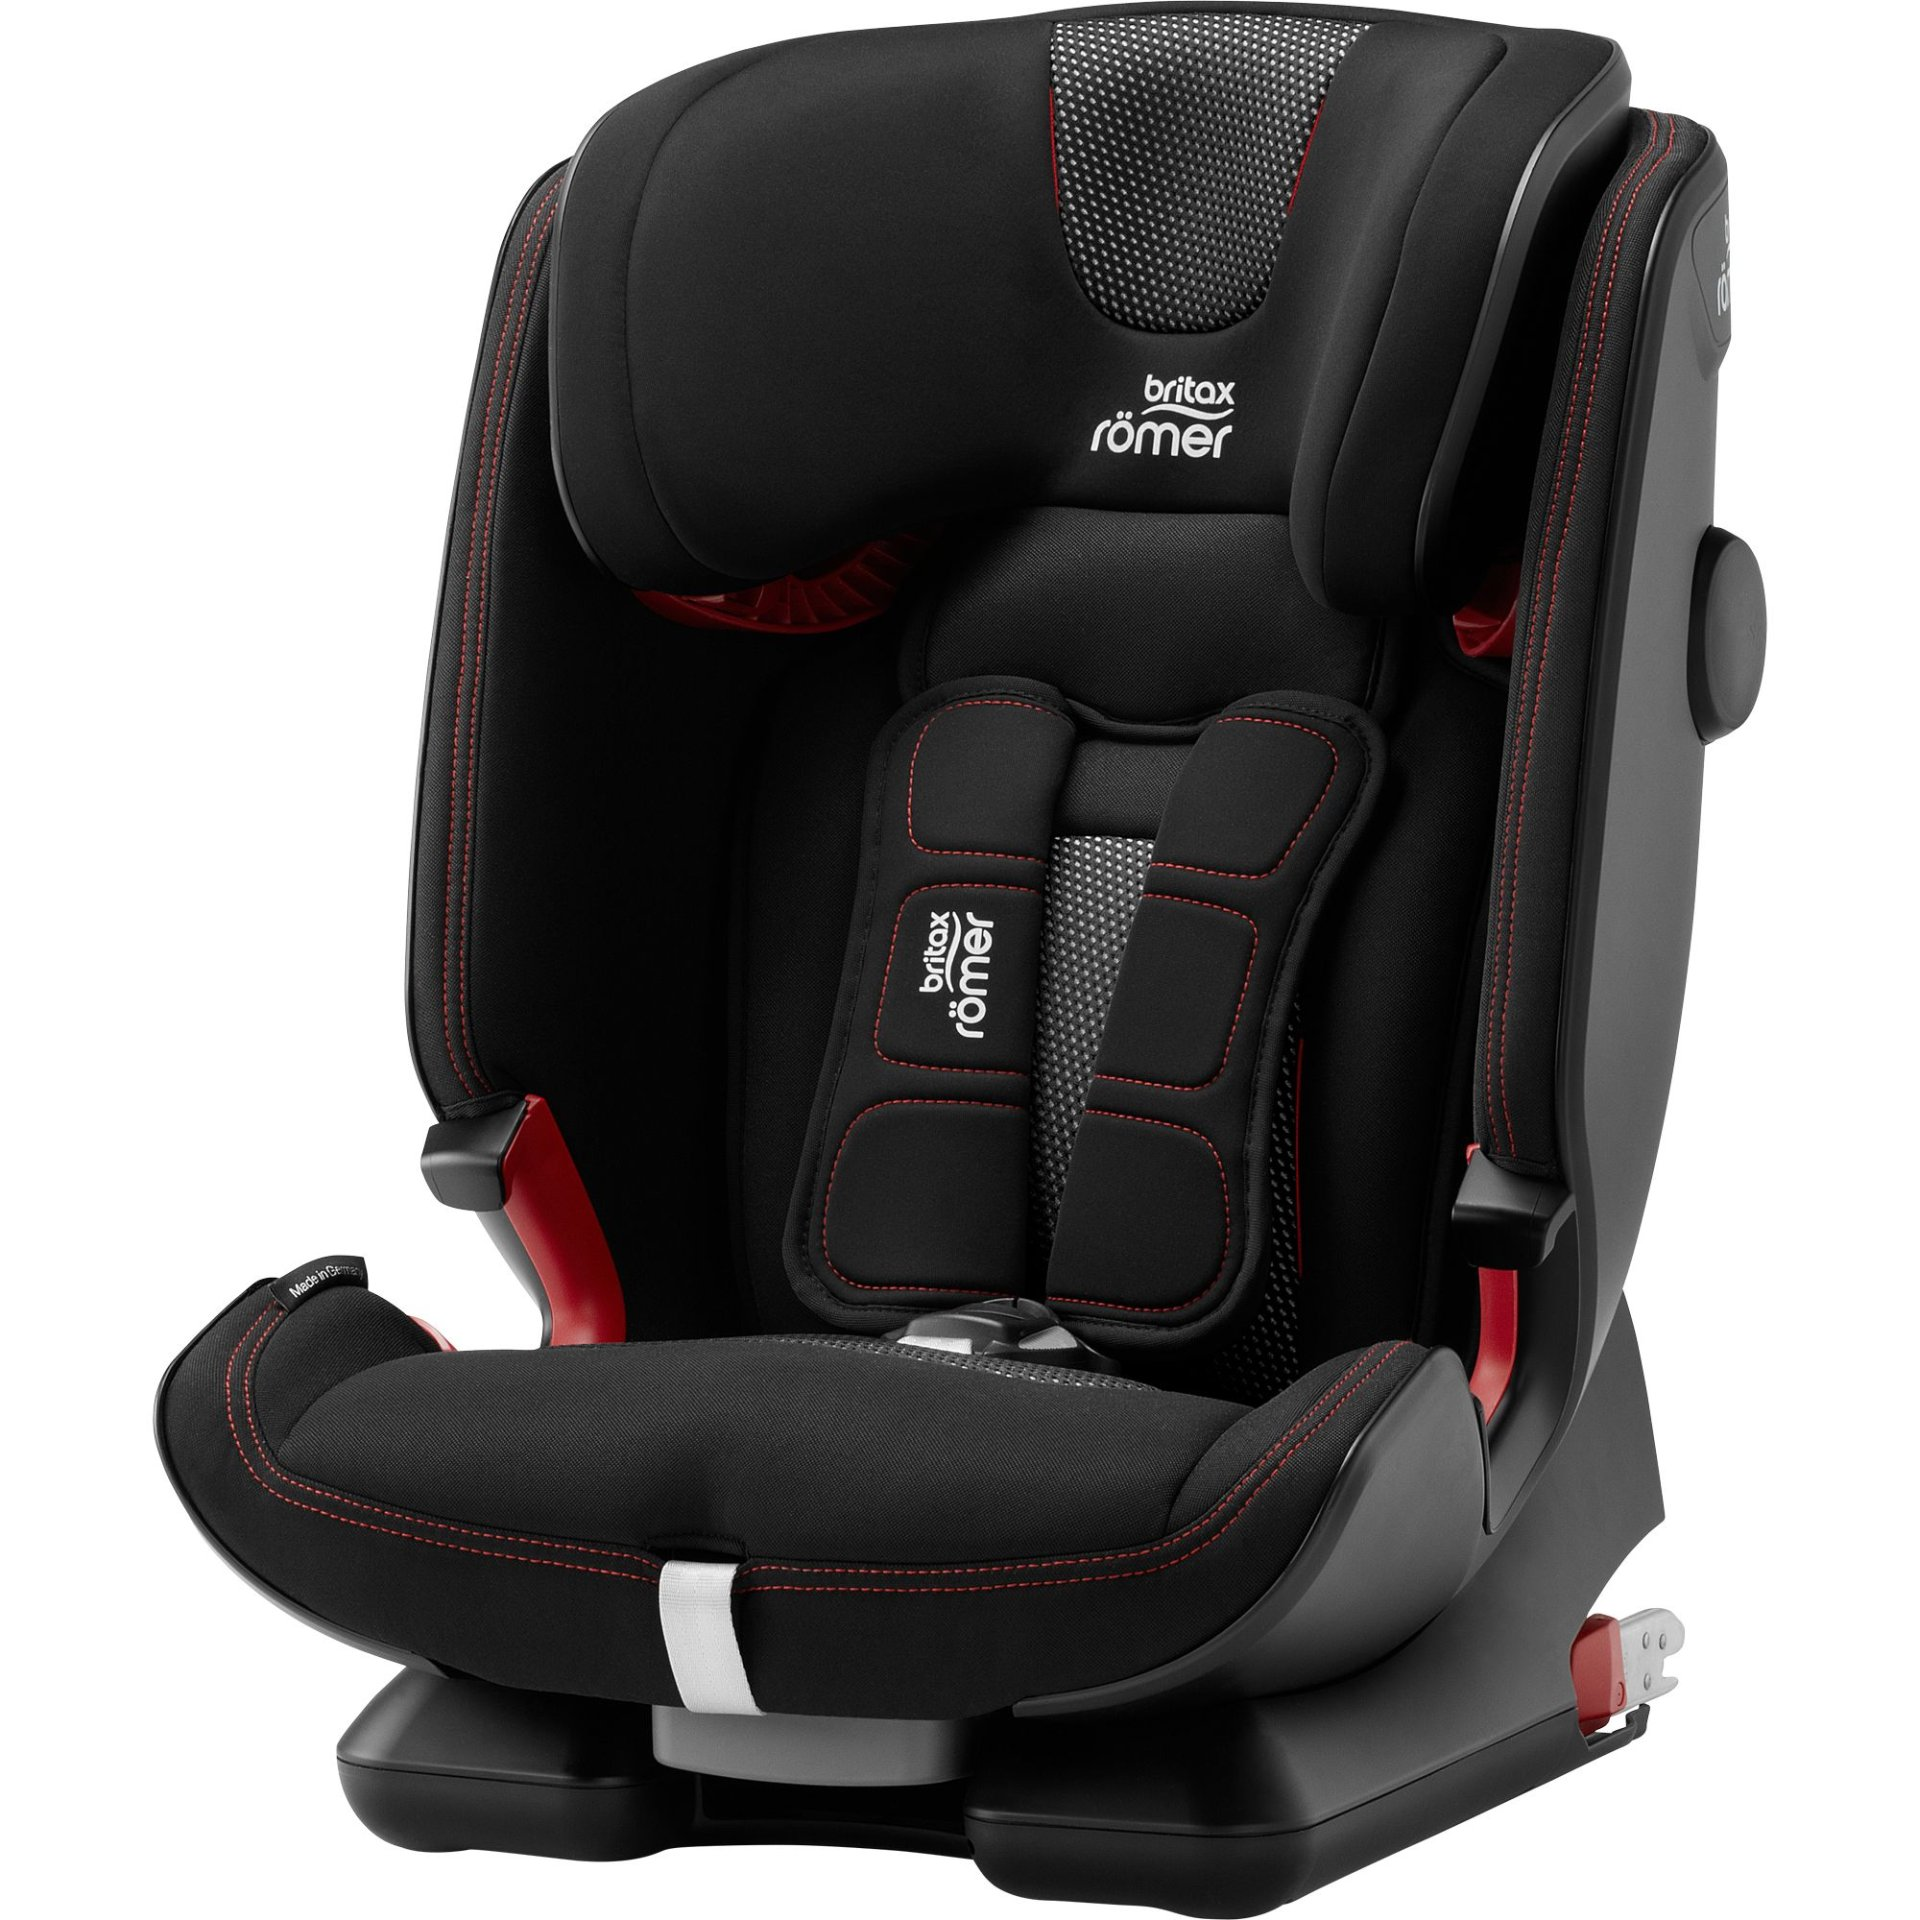 britax r mer child car seat advansafix iv r 2019 air black. Black Bedroom Furniture Sets. Home Design Ideas